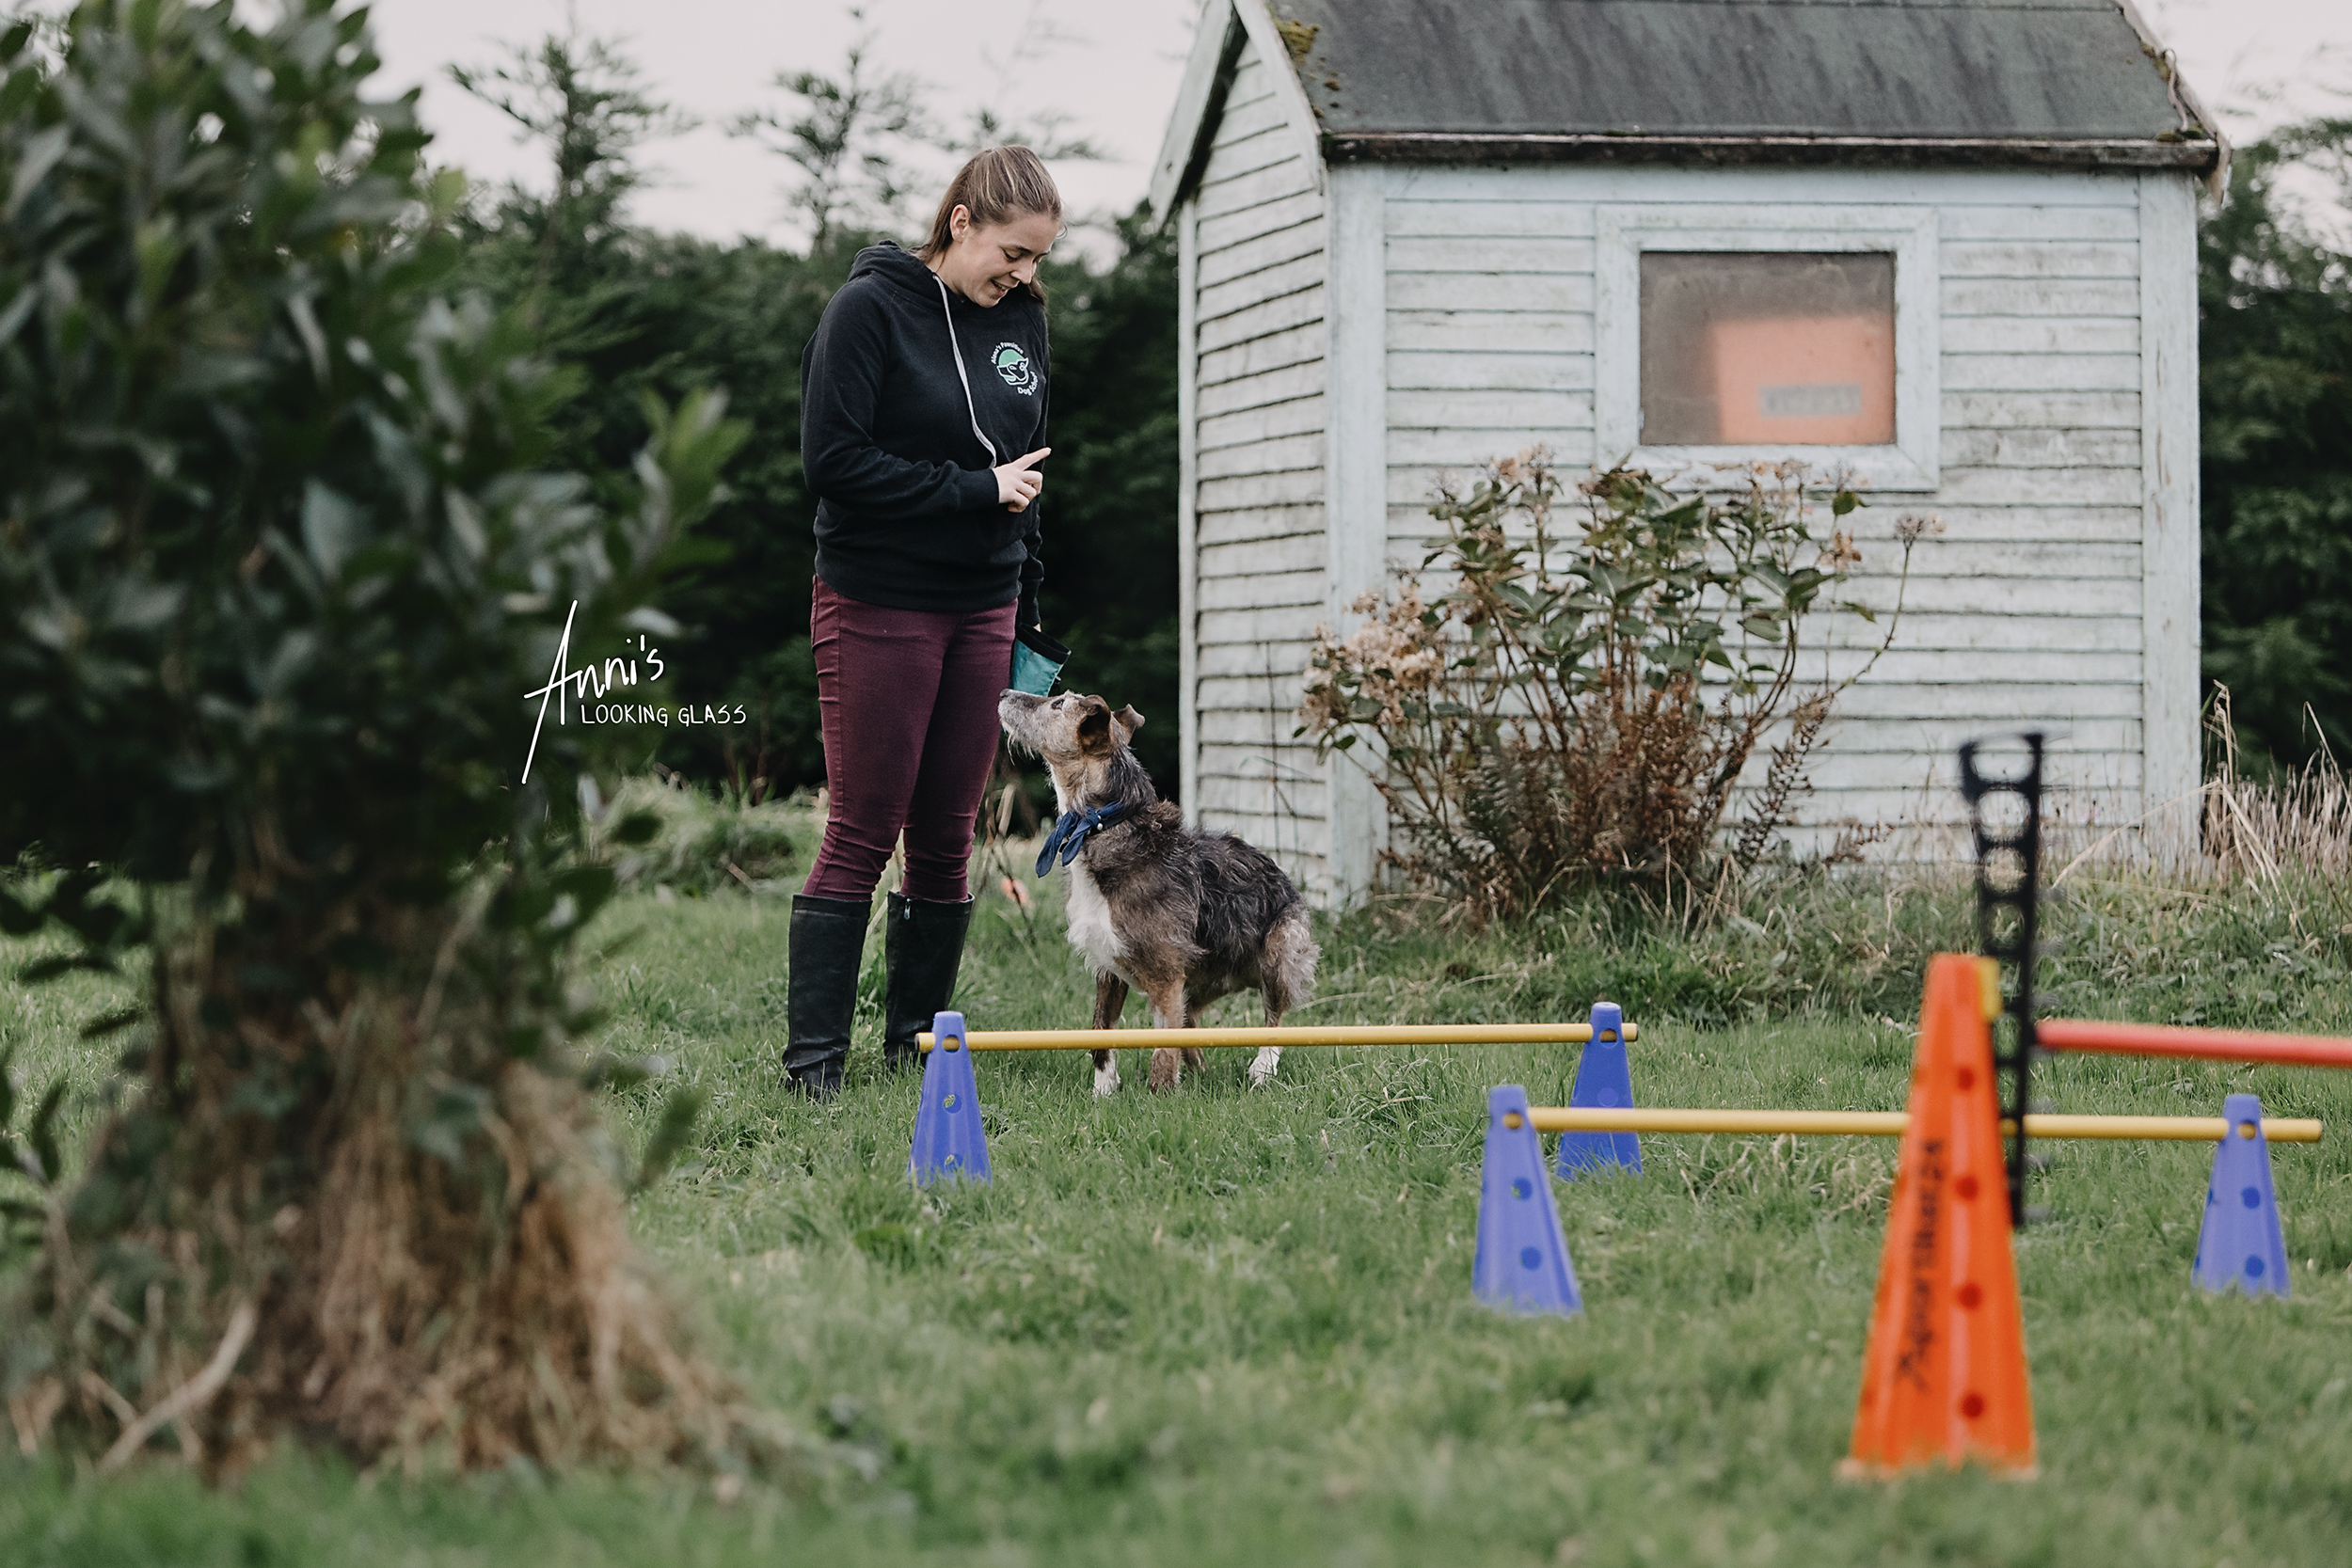 A young woman tells her greyhound to sit with a dog agility parcours in the foreground